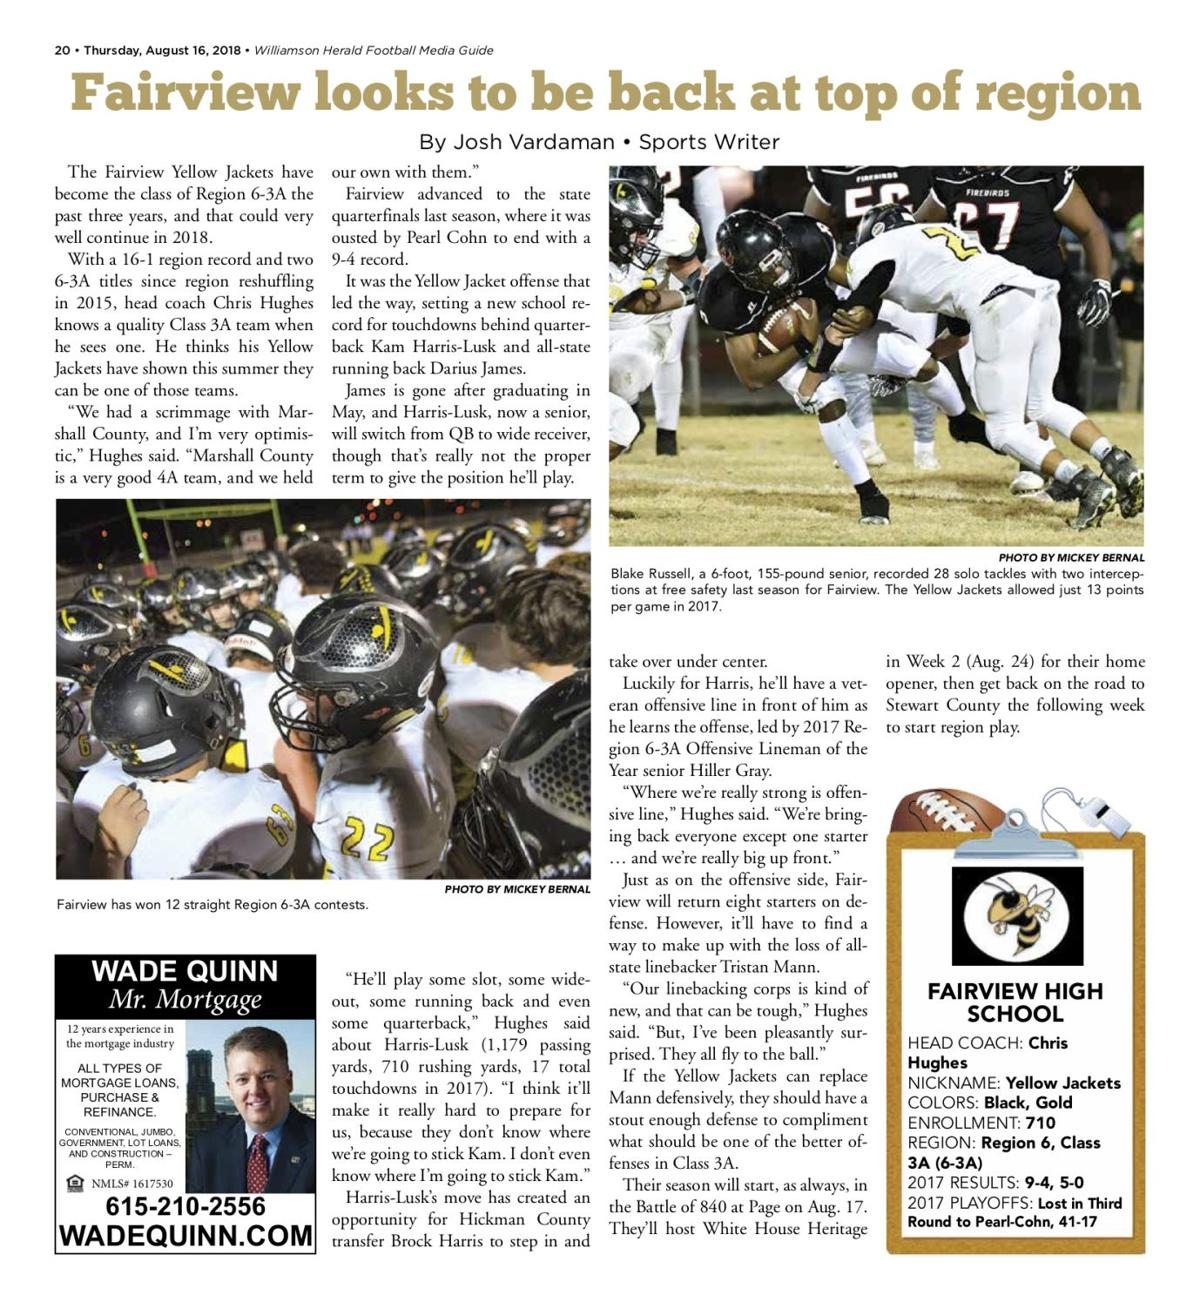 Media Guide Preview - Fairview